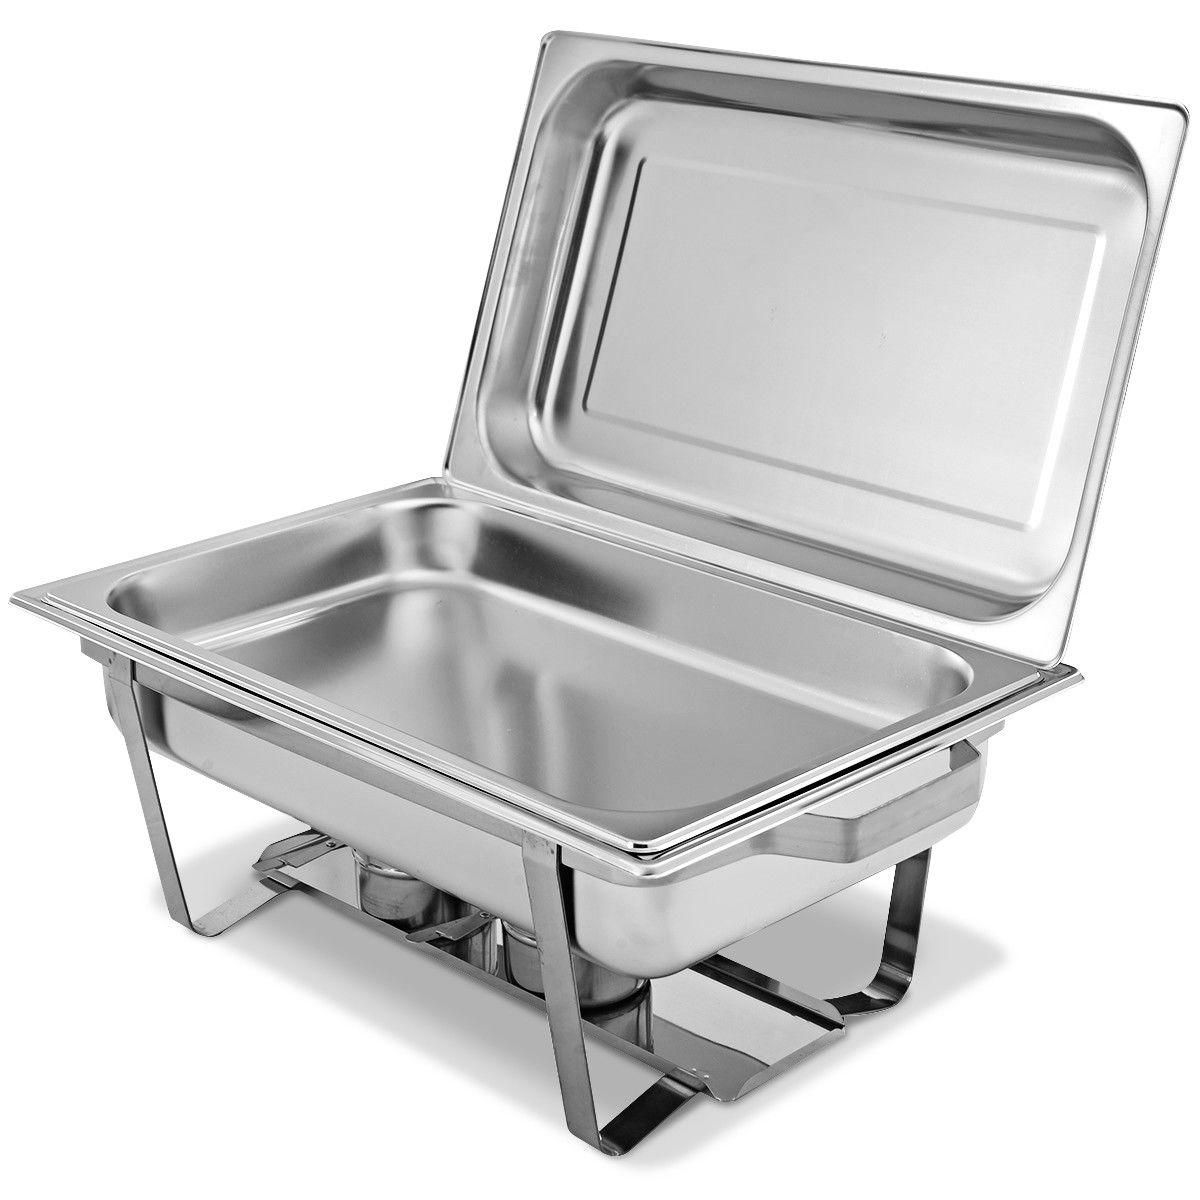 2 Packs Chafing Dish 9 Quart Stainless Steel Rectangular Chafer Full Size Buffet - image 5 of 10